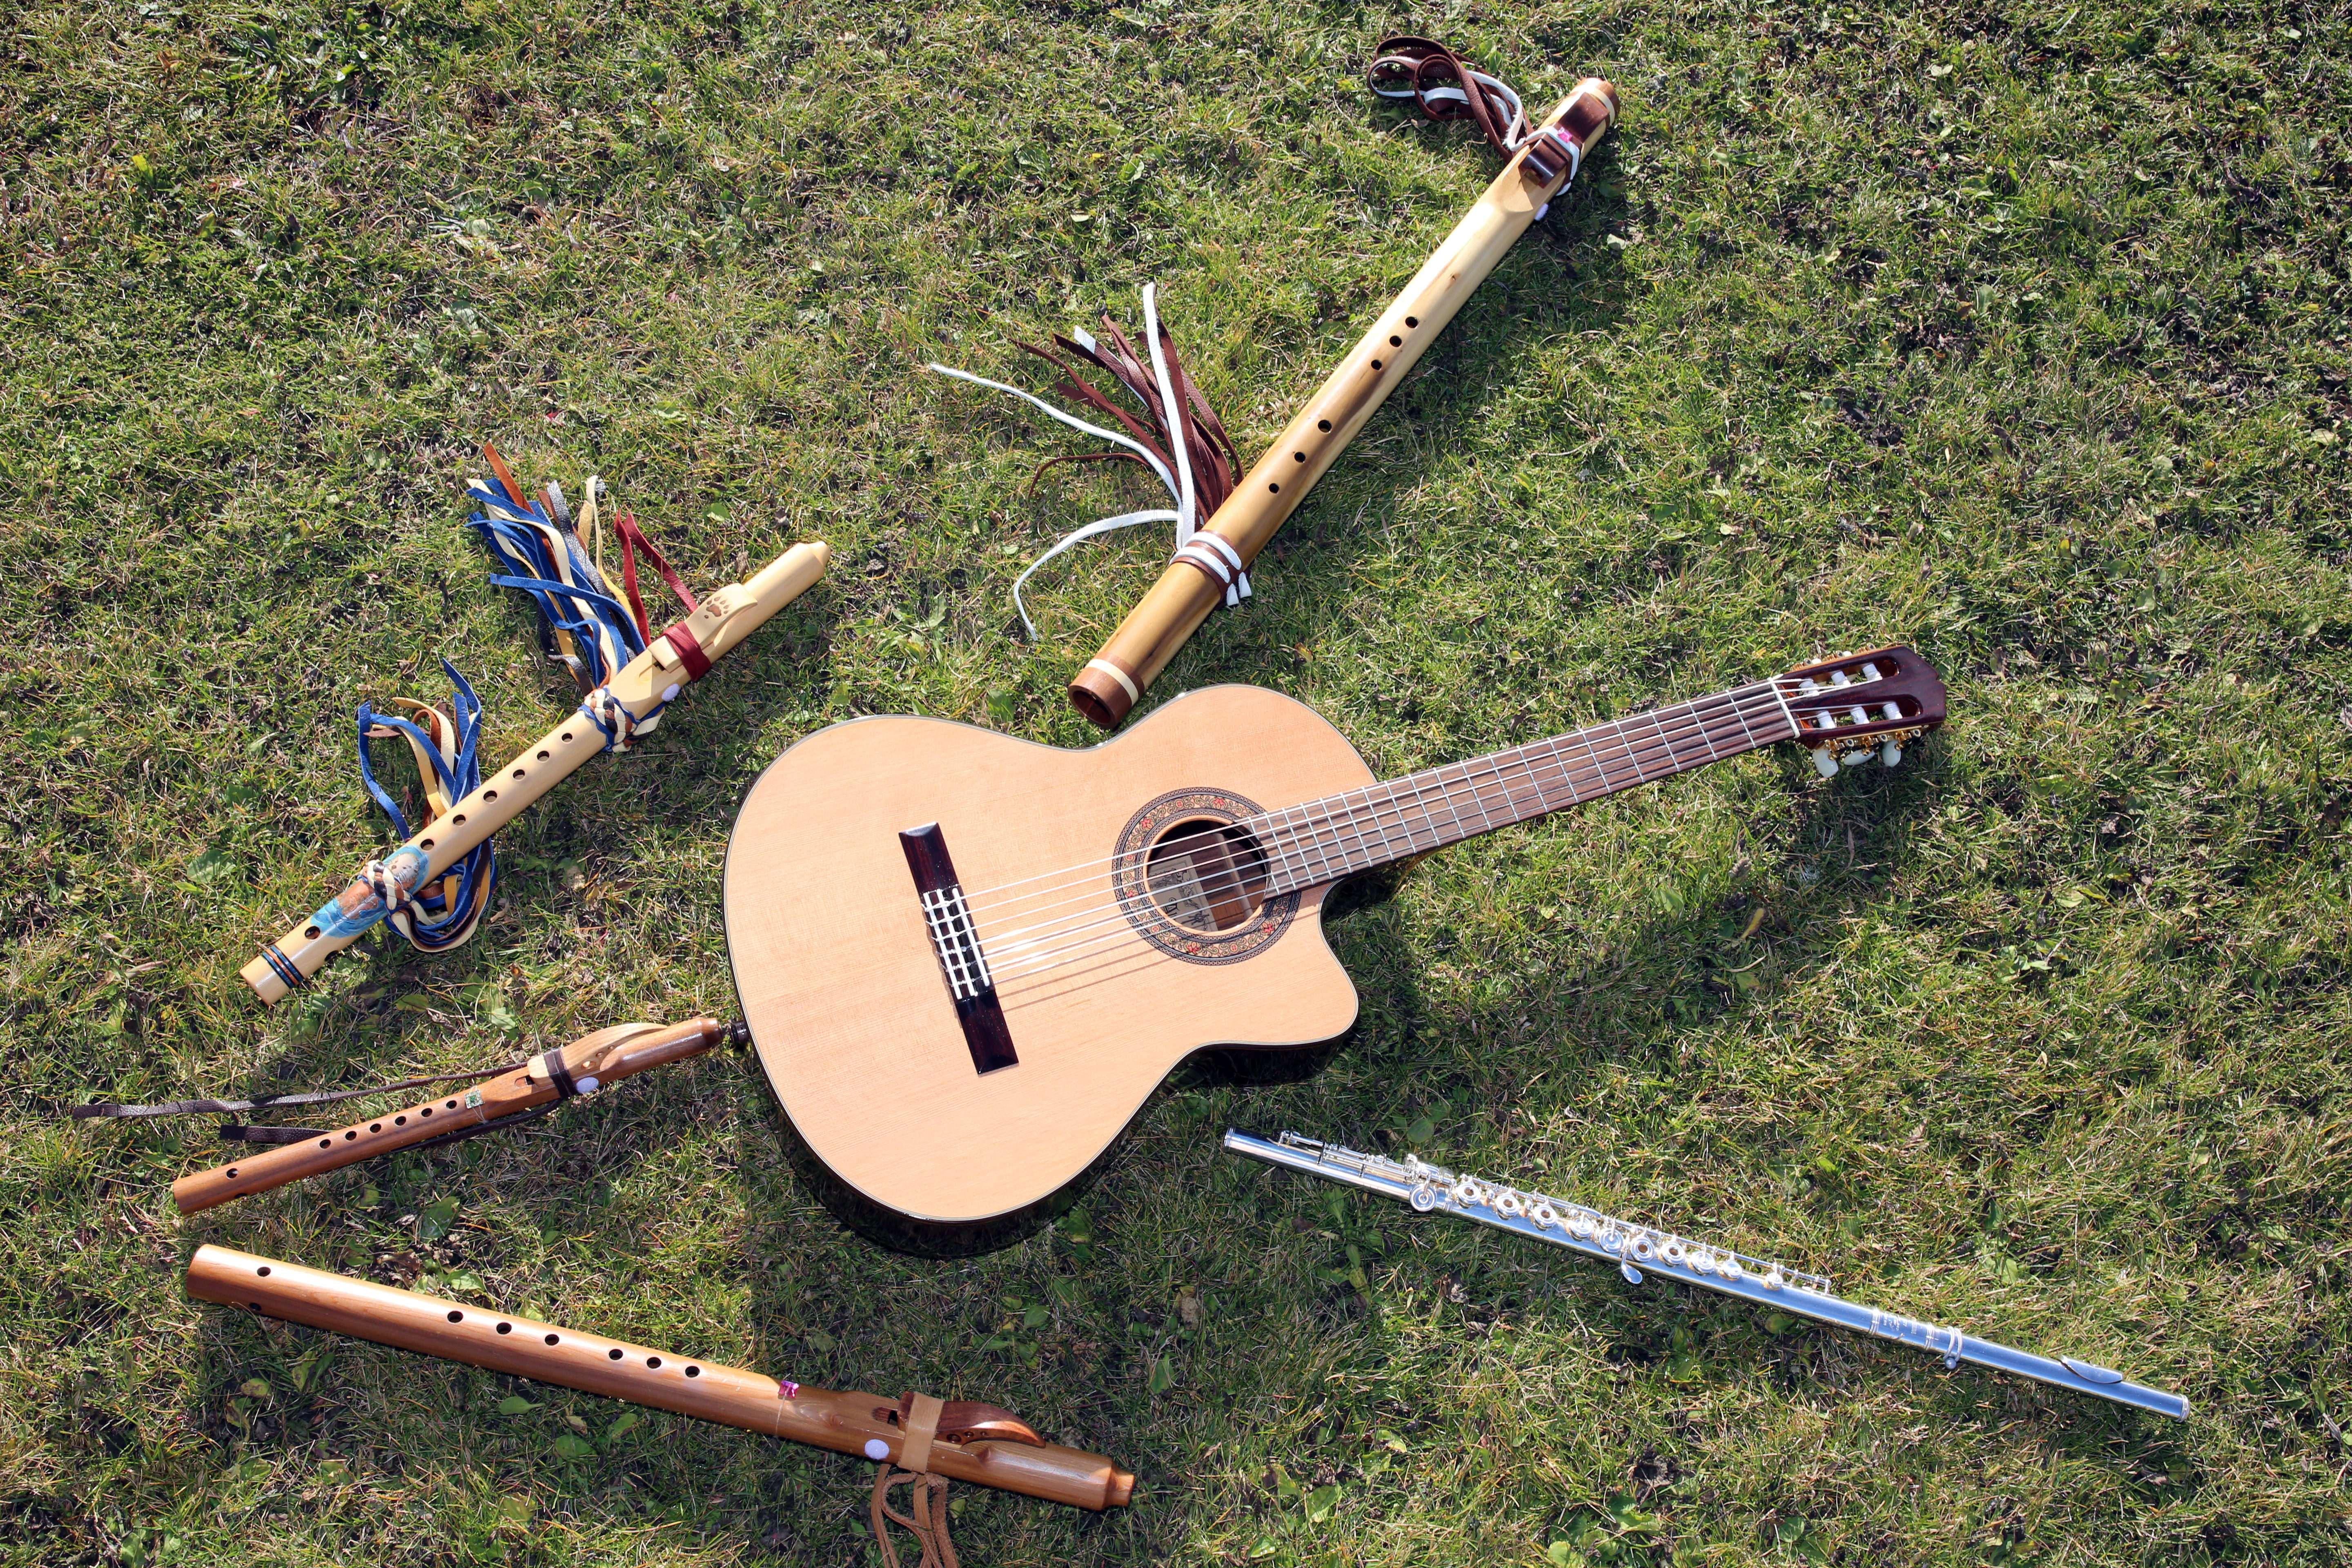 Instruments We Play